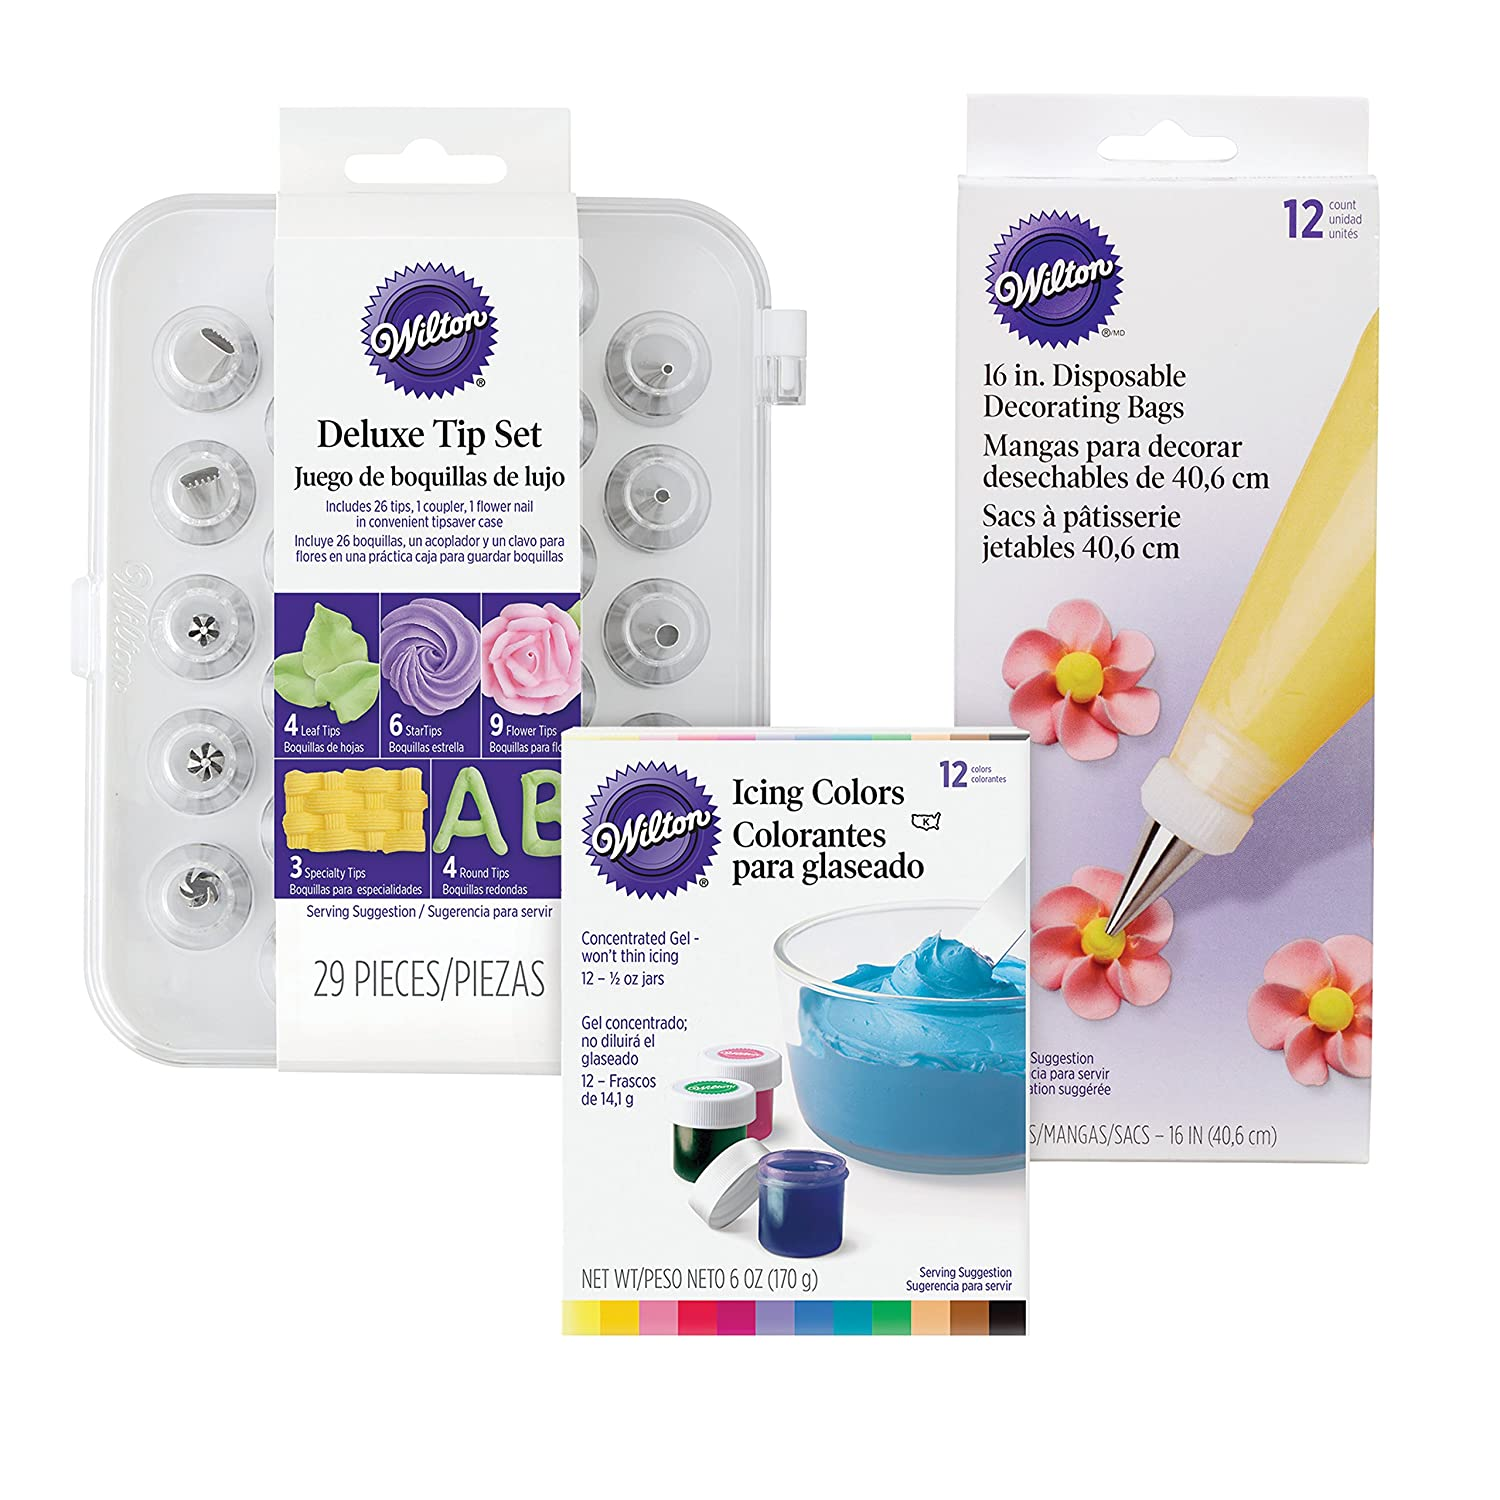 Wilton Deluxe Cake Decorating Tip Set, 52-Piece - 12 Gel-Based Icing Colors, 12 Count Package of 16-inch Disposable Decorating Bags and 29-Piece Deluxe Tip Set with case 2104-3911